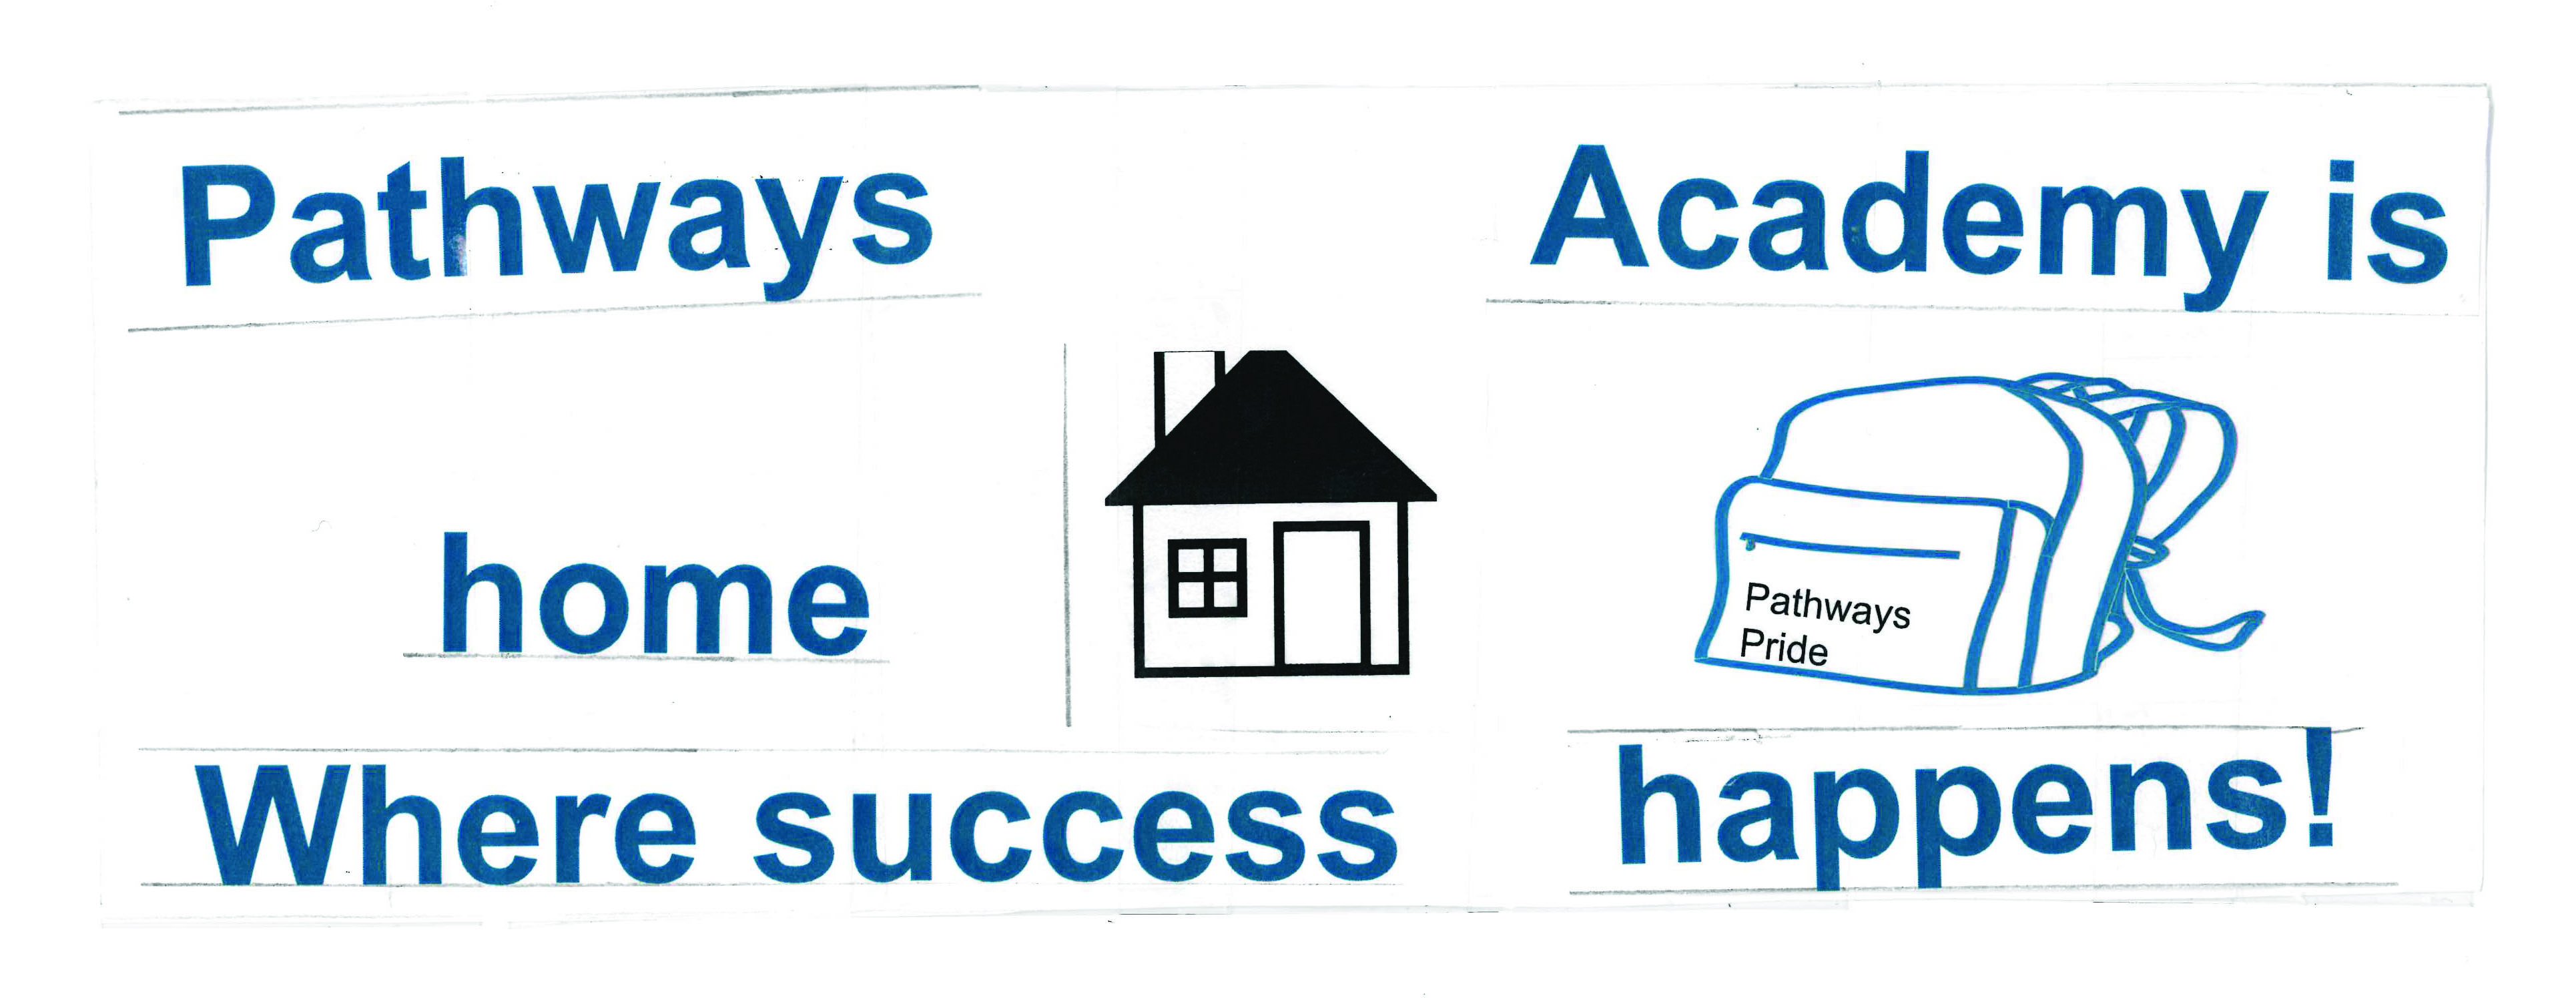 "A bumper sticker made by Pathays students showing house and backback illustrations and the words ""Pathways Academy is home, where success happens!"""